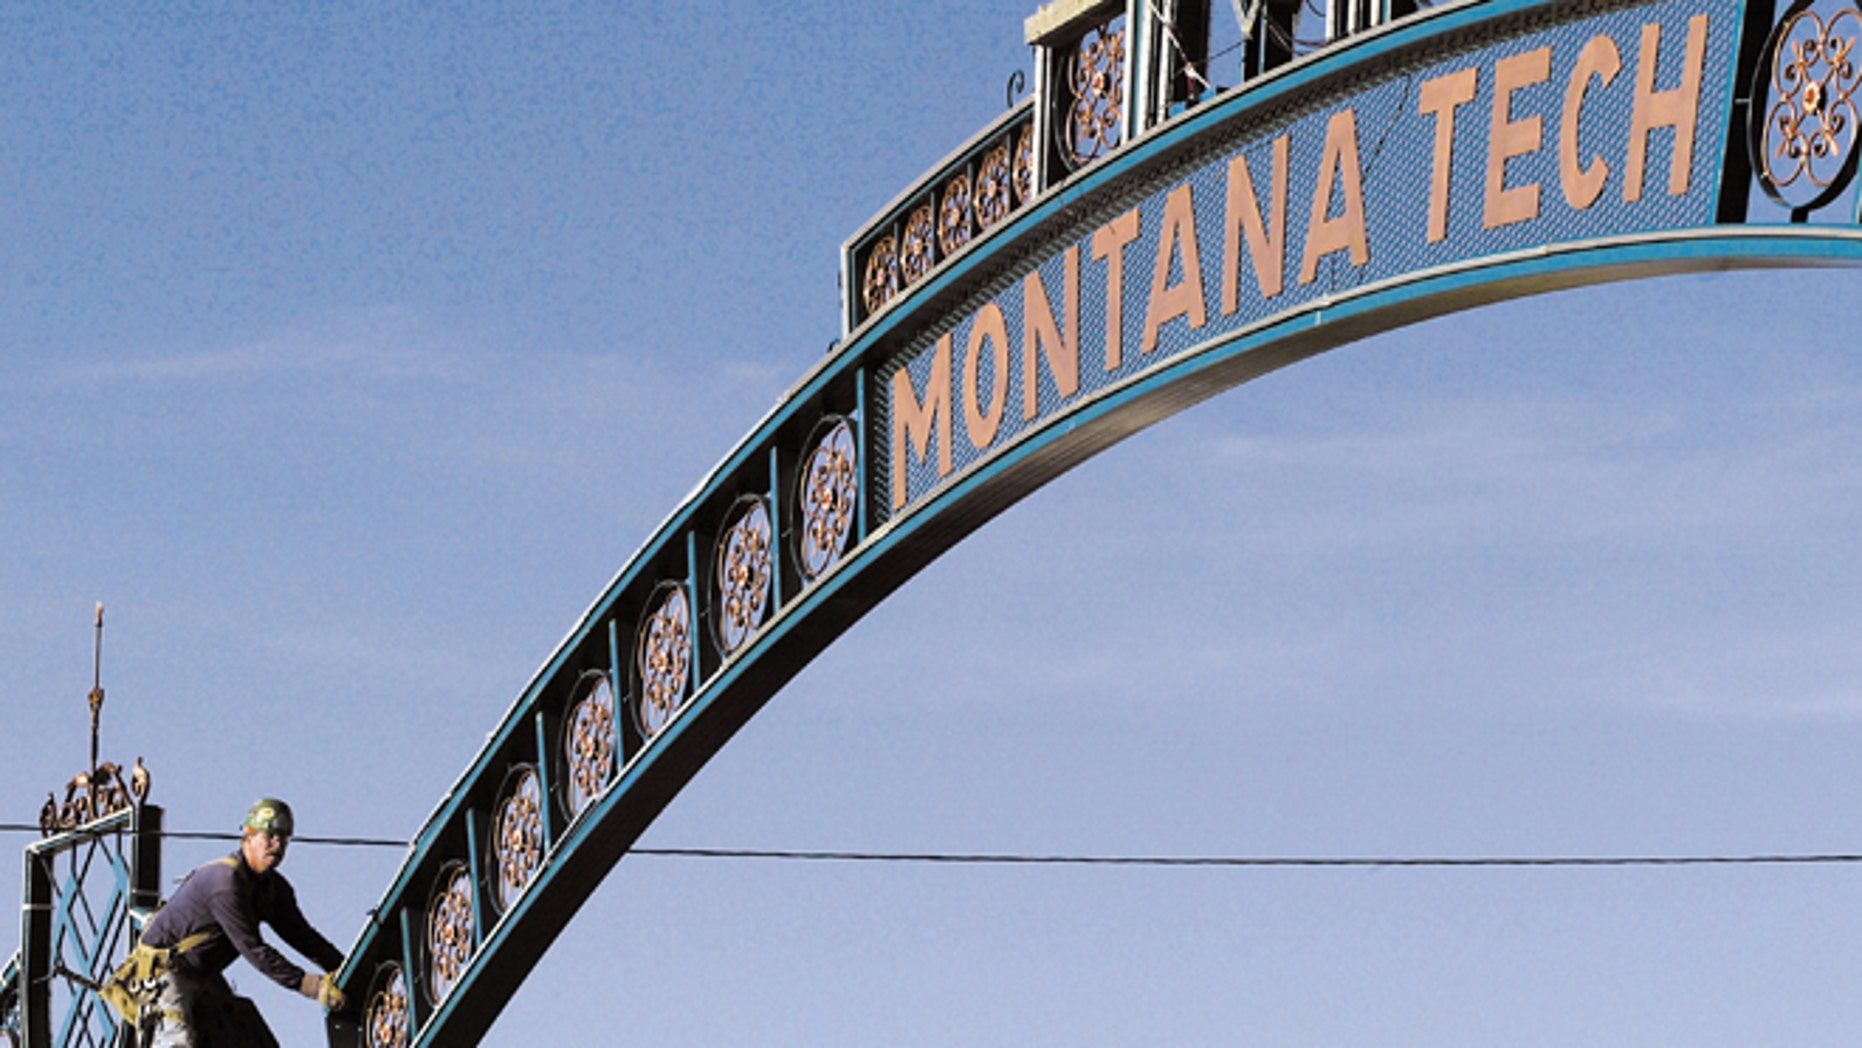 In this Aug. 26, 2003, file photo, Butch Schelin guides the new Montana Tech archway into place above Park Street in Butte, Mont. Montana Tech has expelled 15 summer school students for cheating.